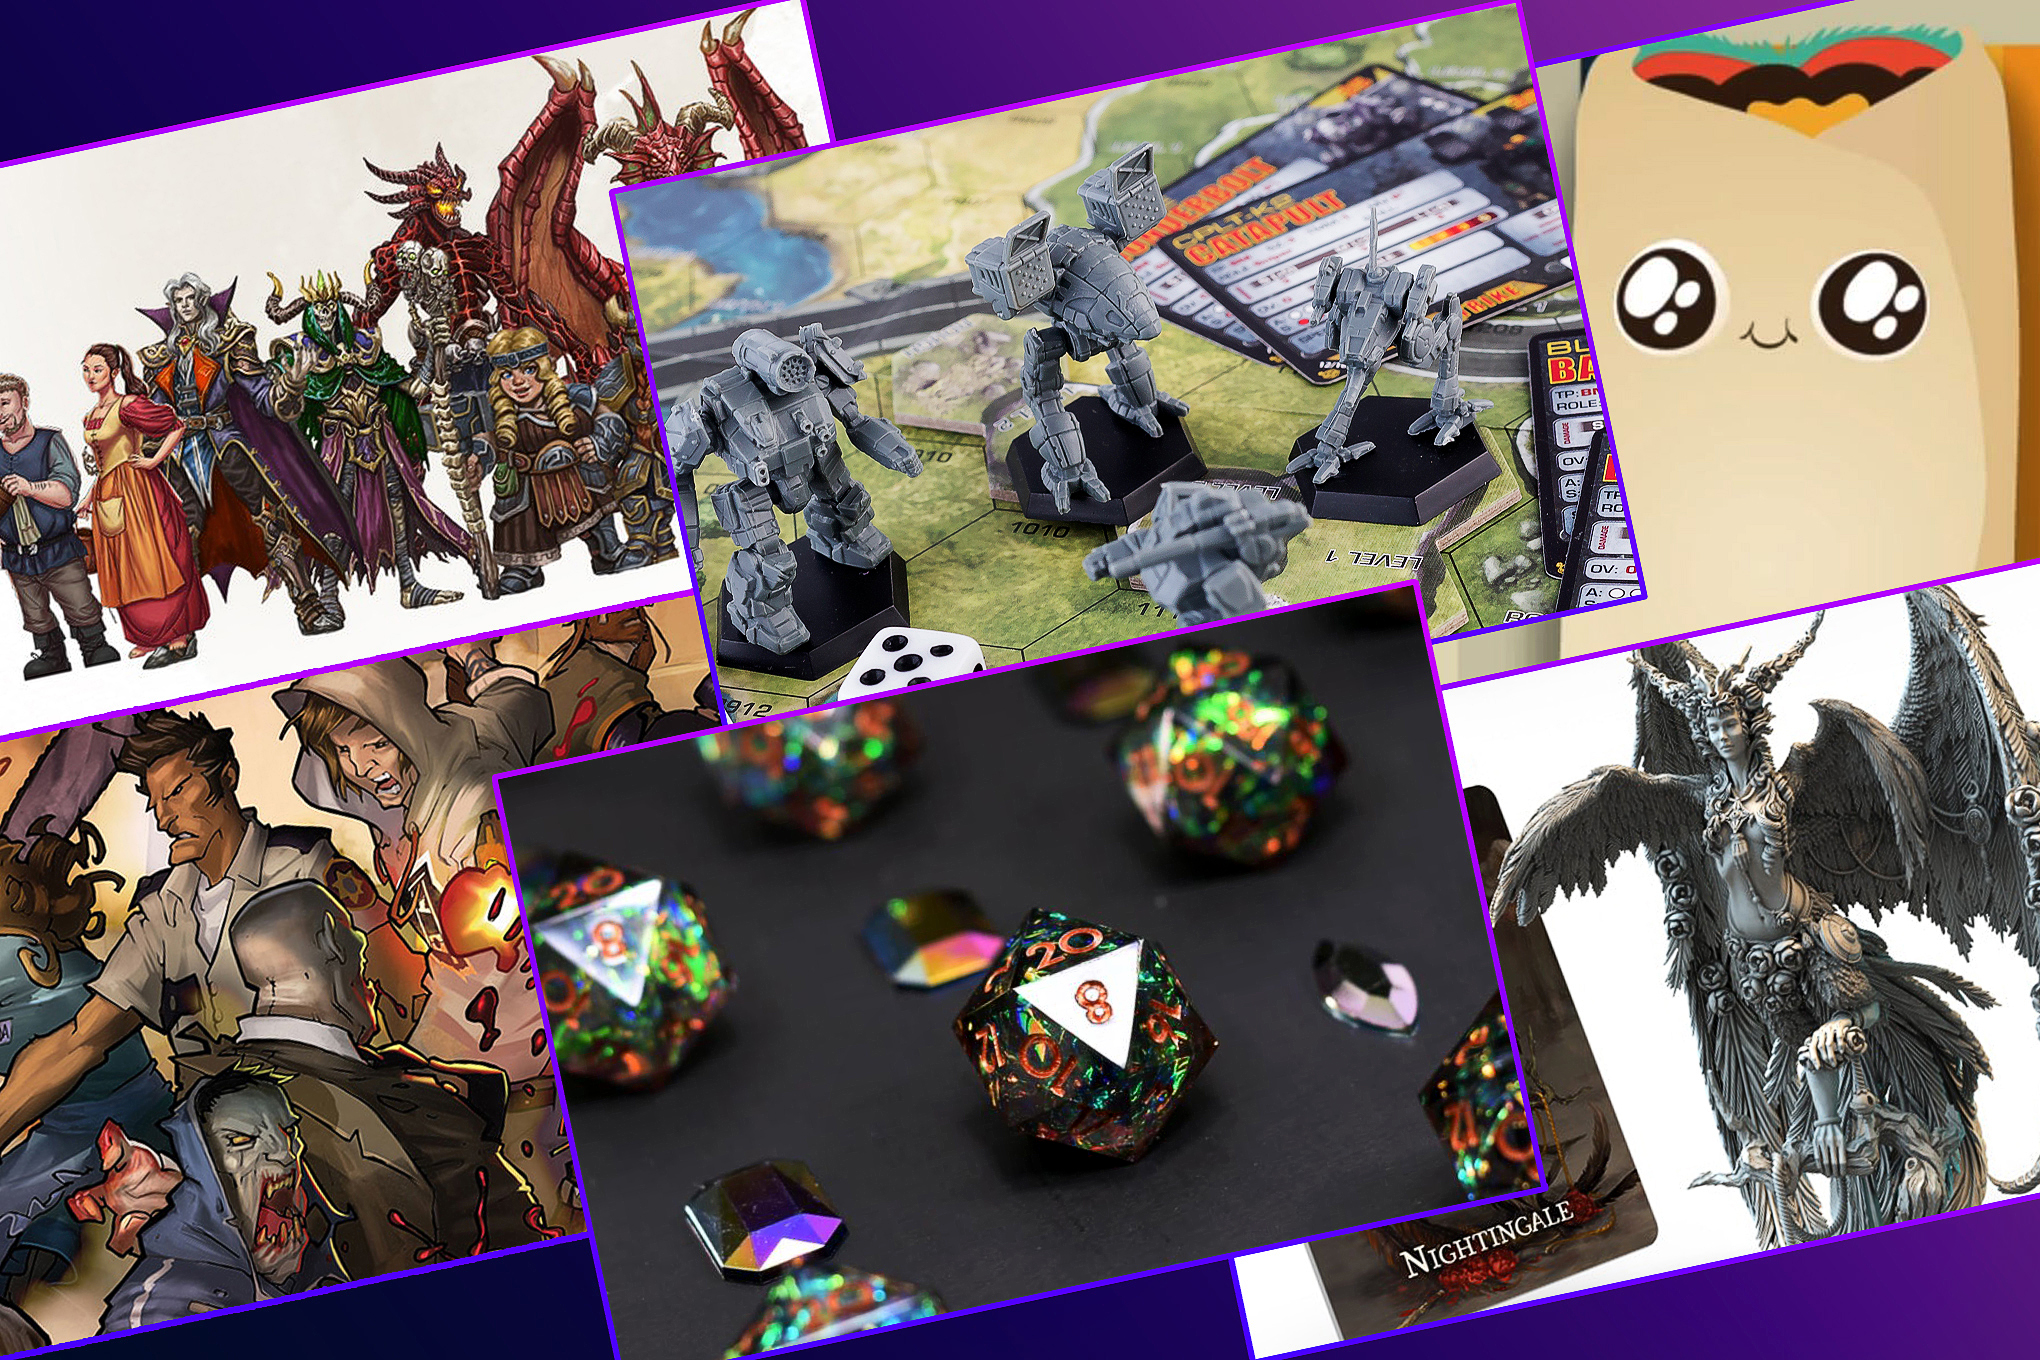 A graphic grid featuring six images from tabletop games on Kickstarter